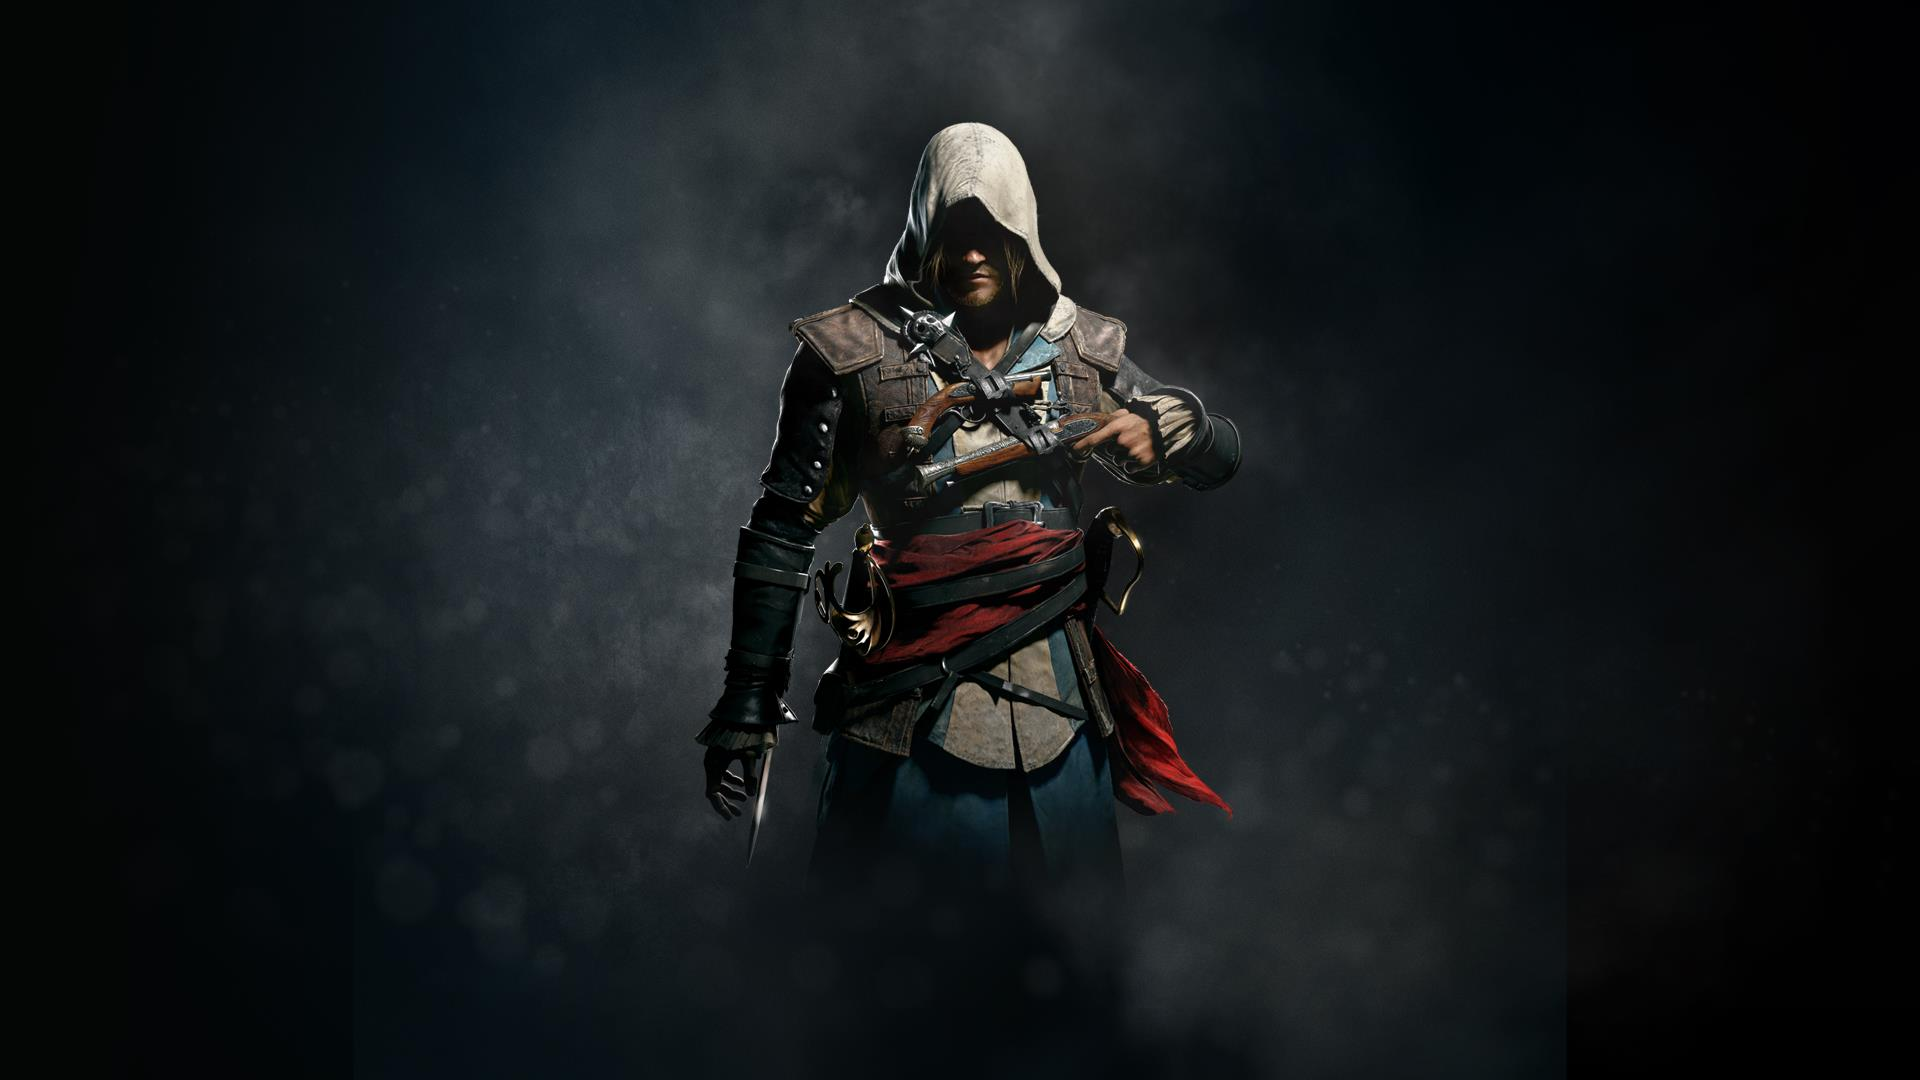 All rounder in Assassin's Creed IV: Black Flag